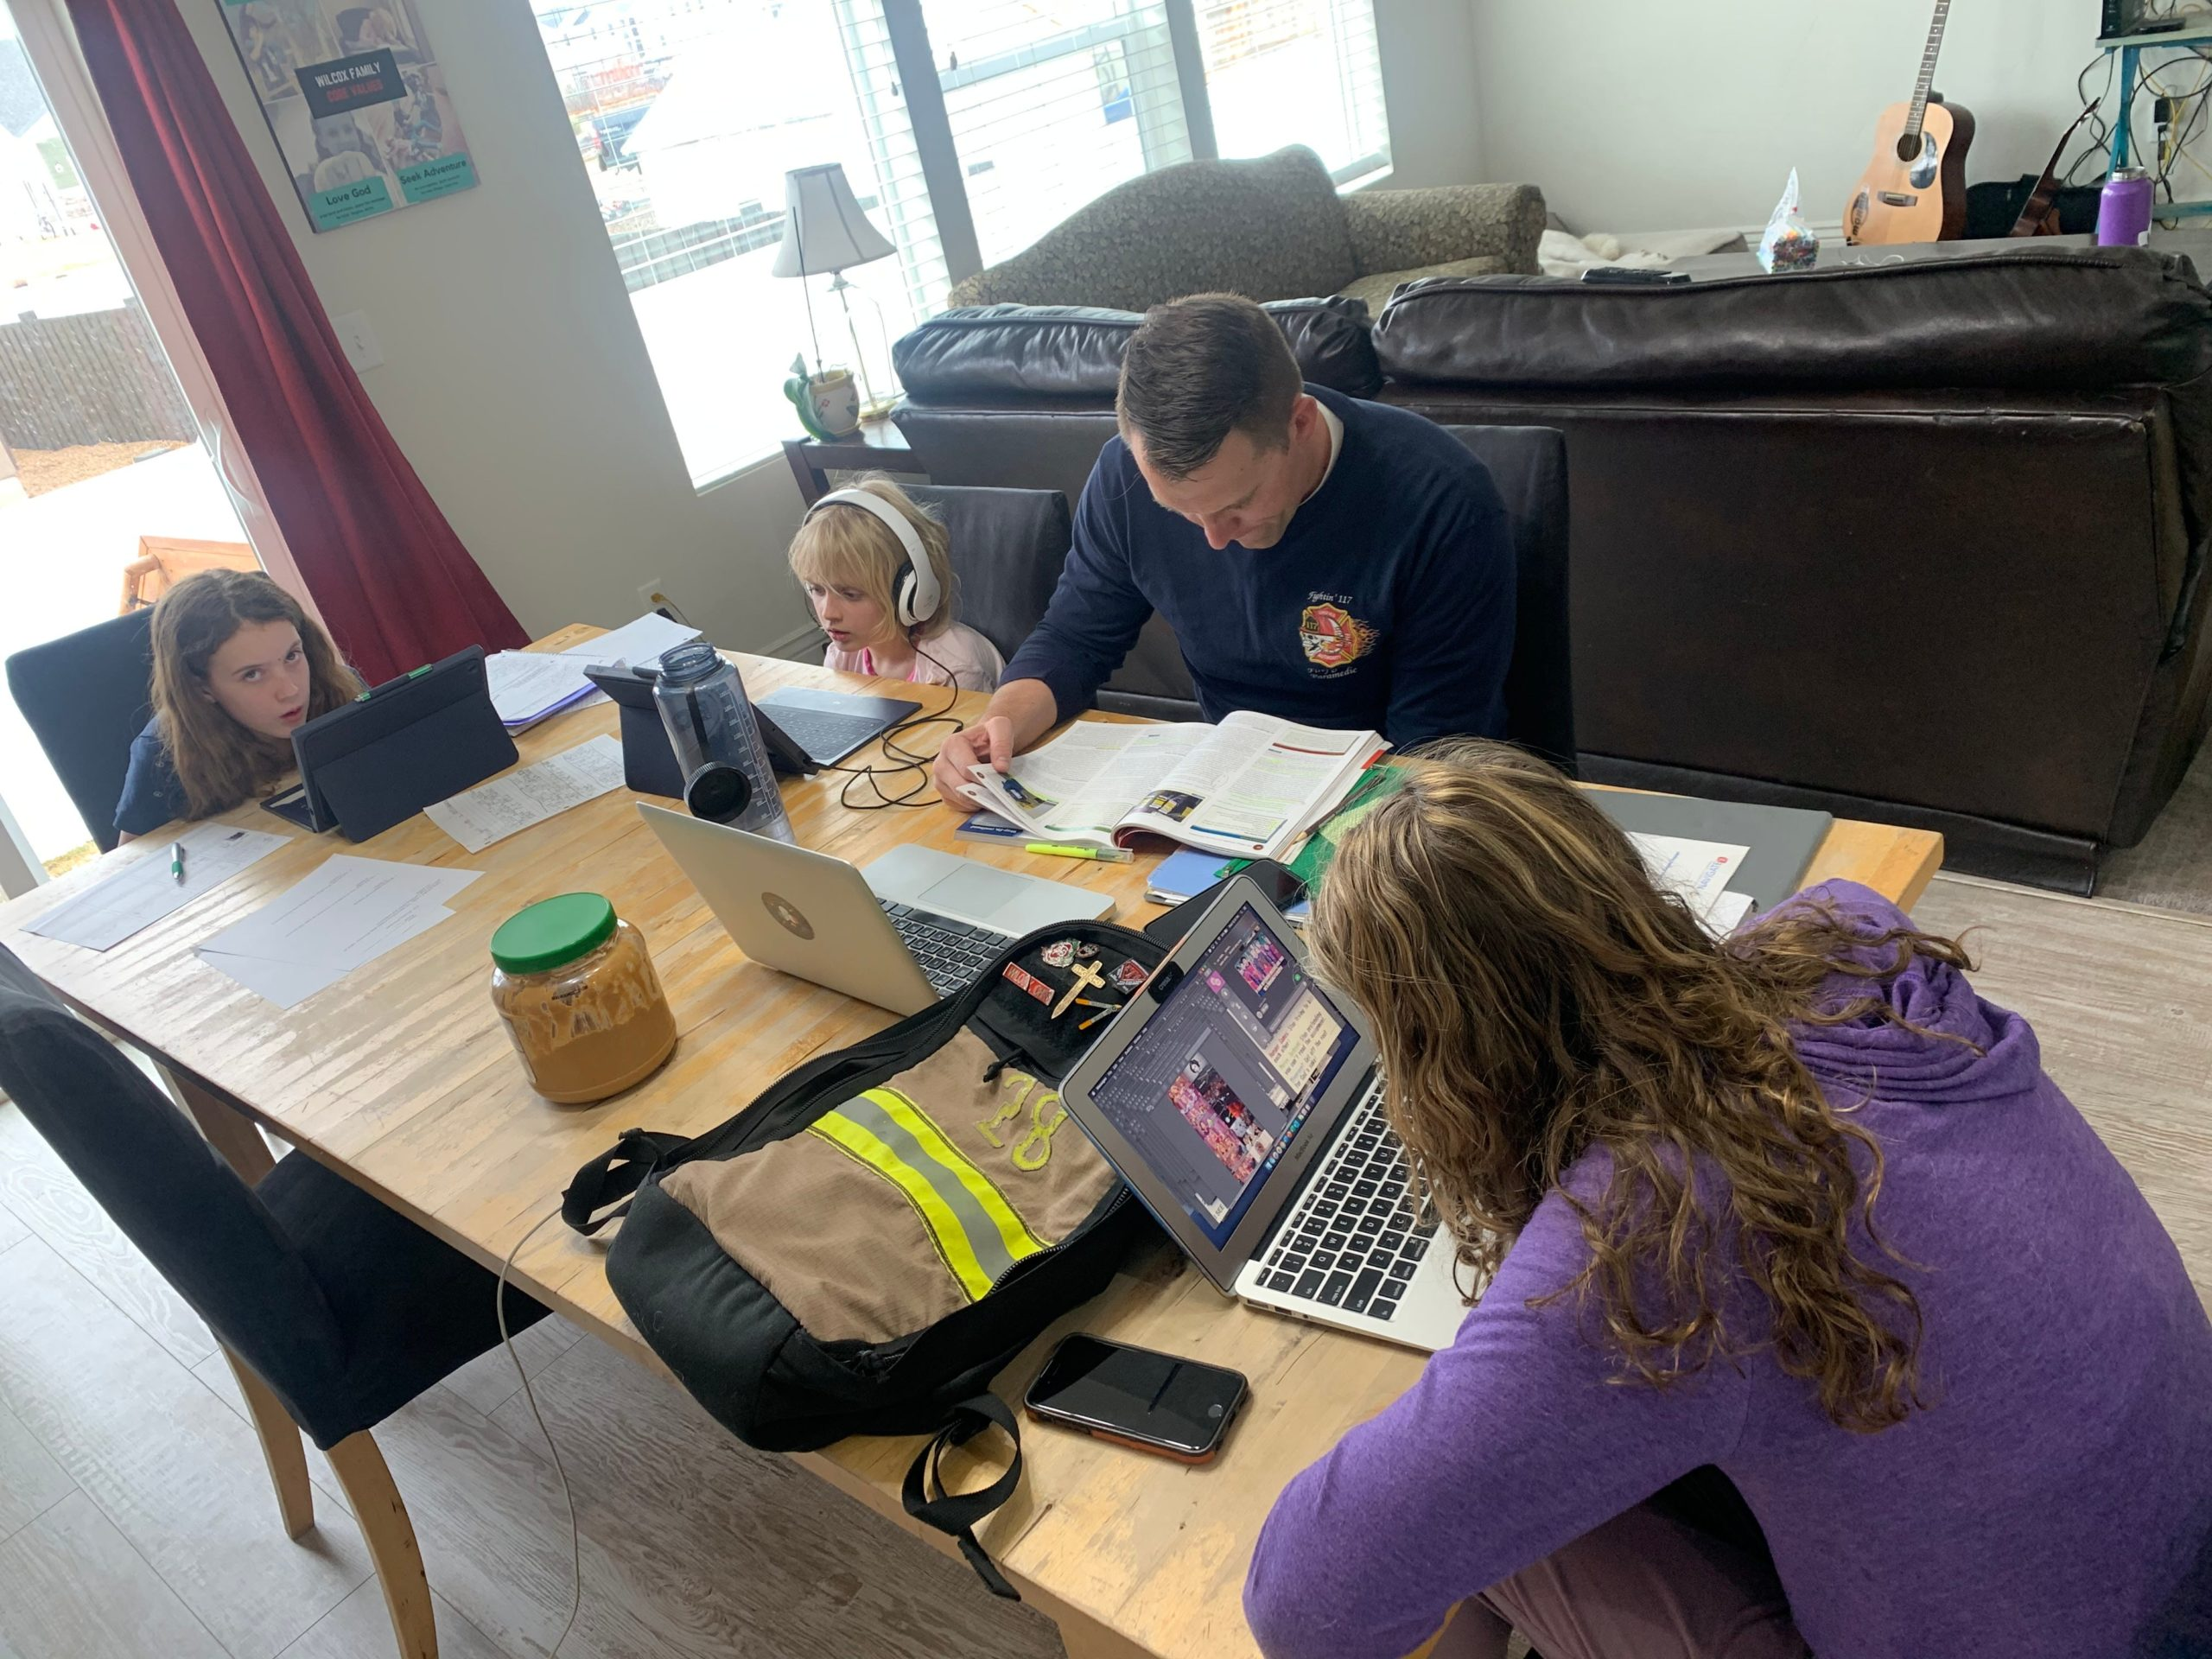 YouTube, Zoom and kids: Working at home in the coronavirus age